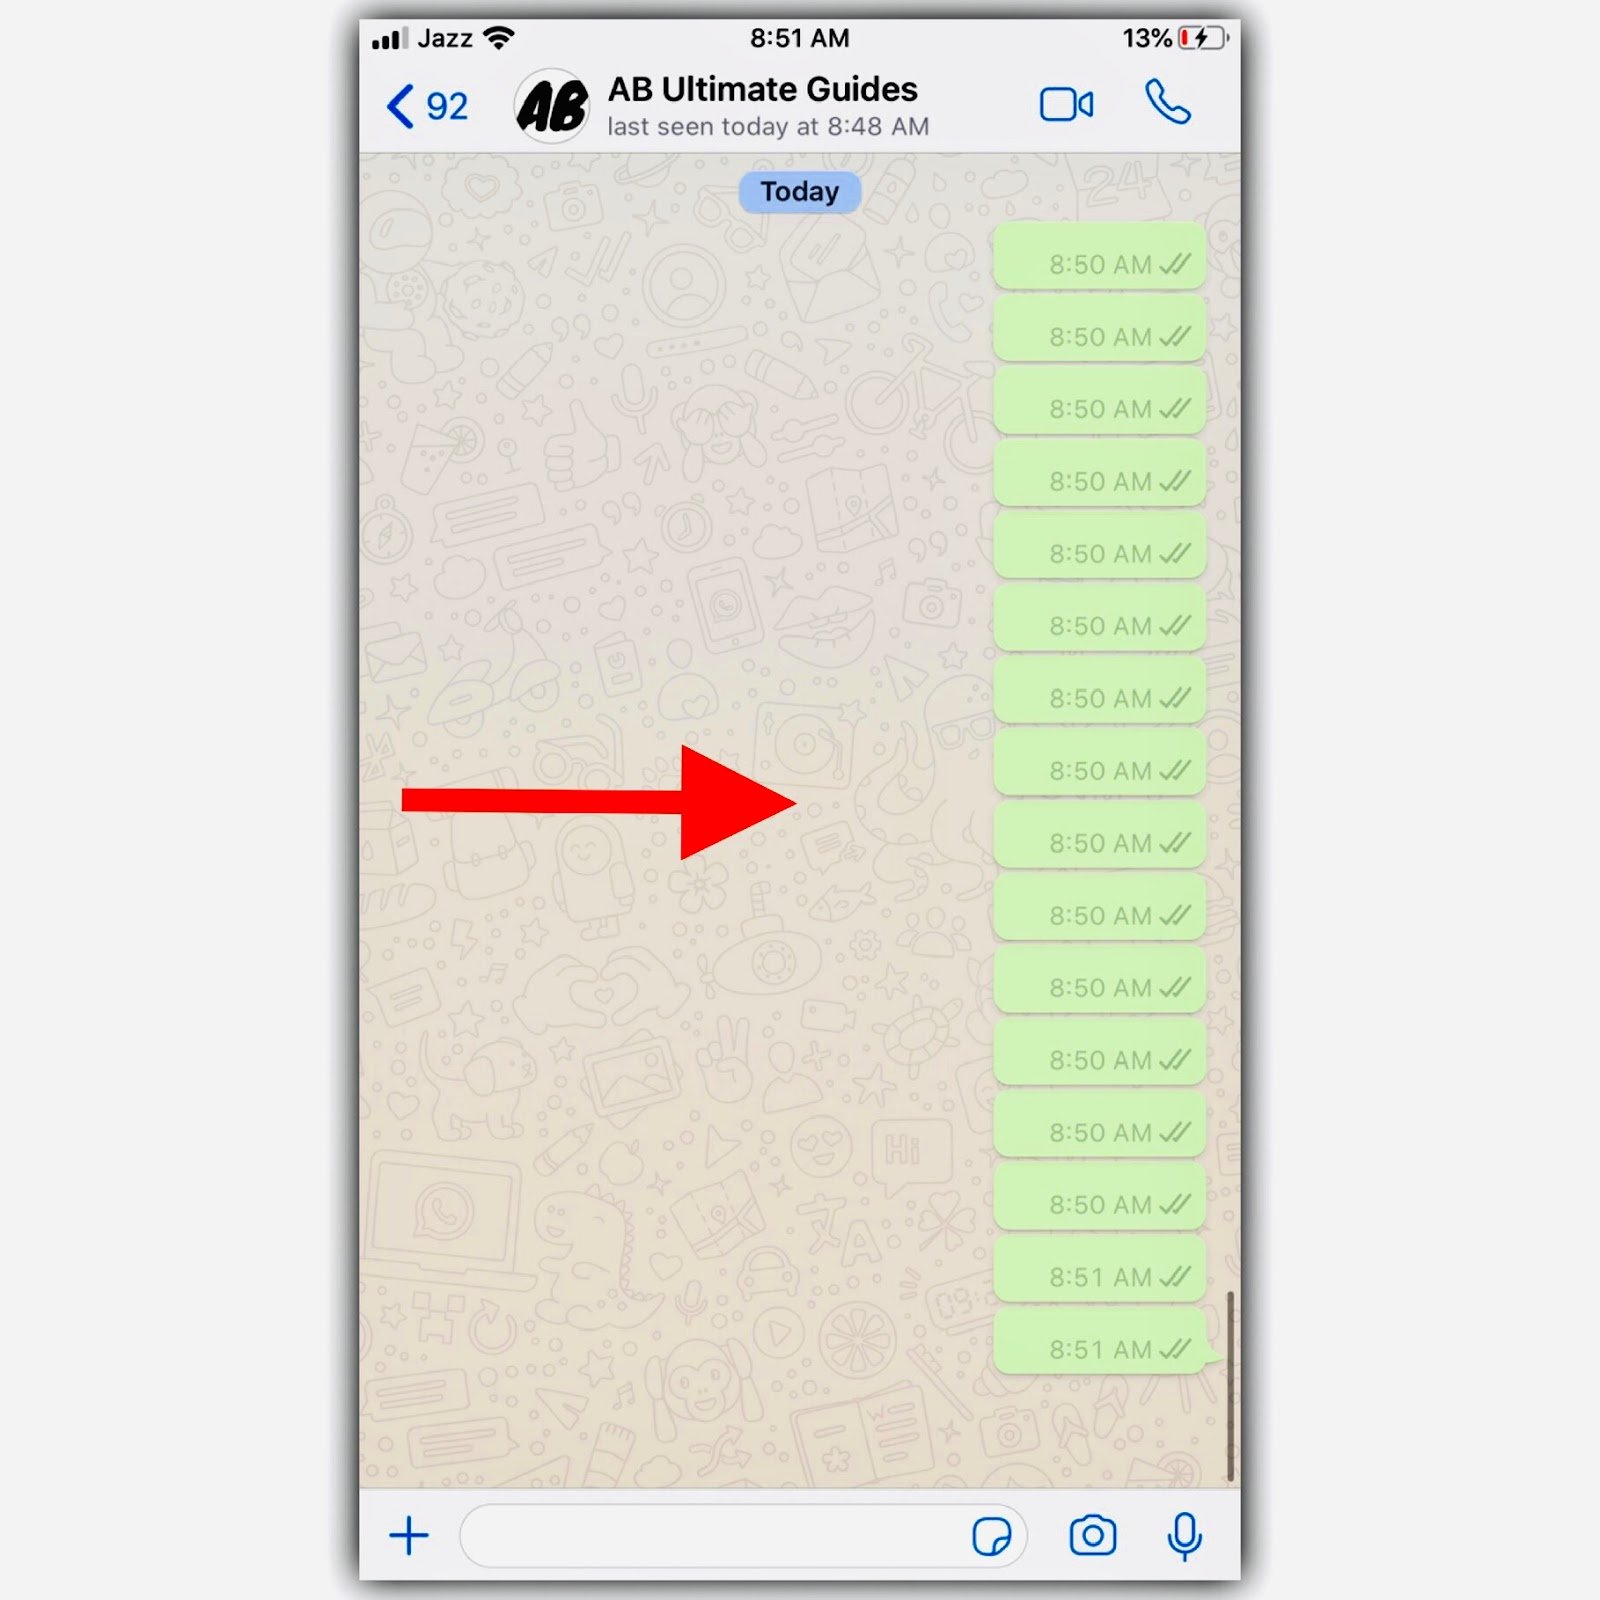 How To Send Blank Message On Whatsapp, abultimateguides